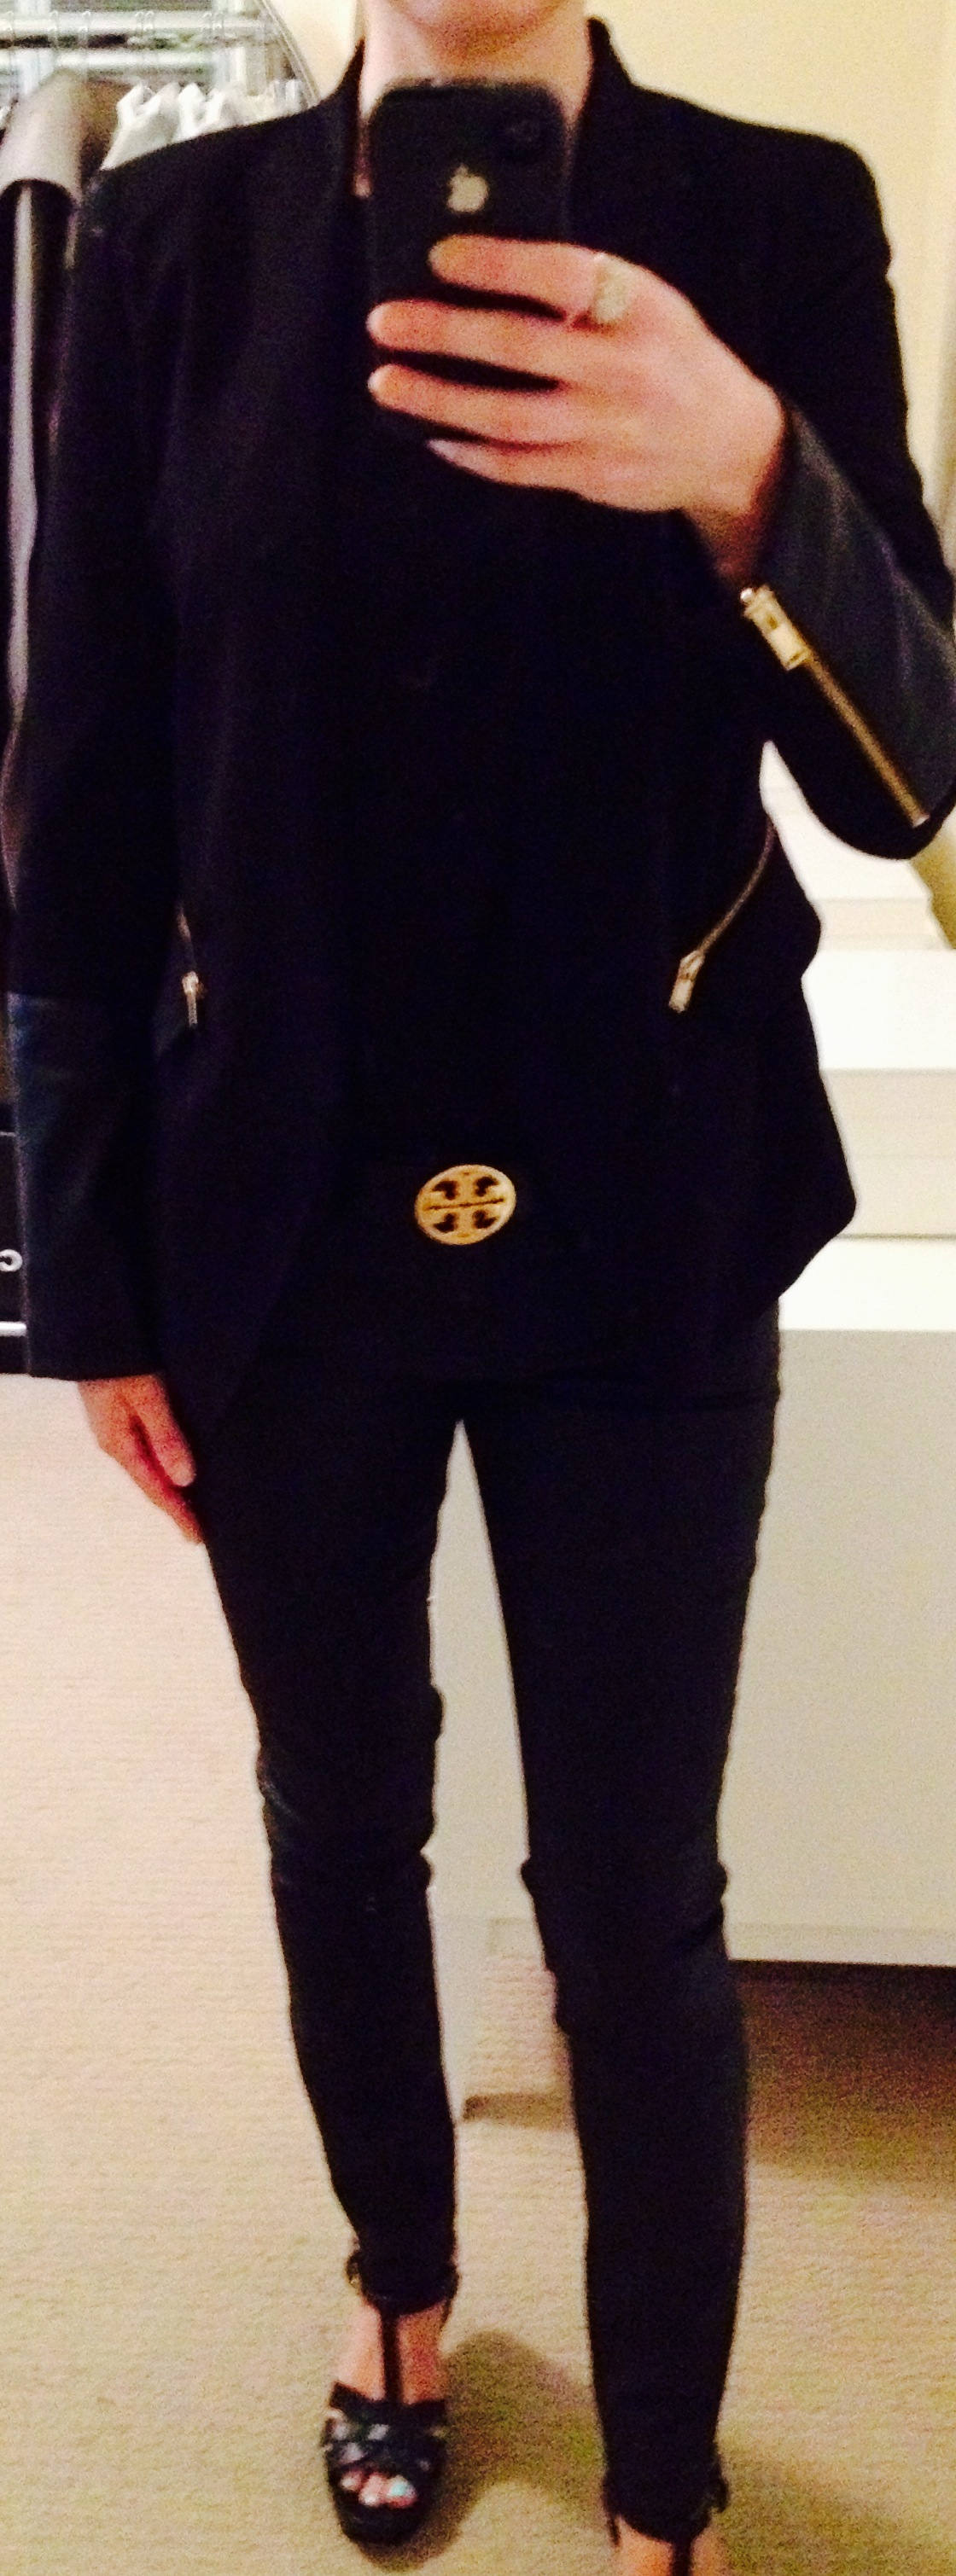 August 6, Black on Black with Tory Burch